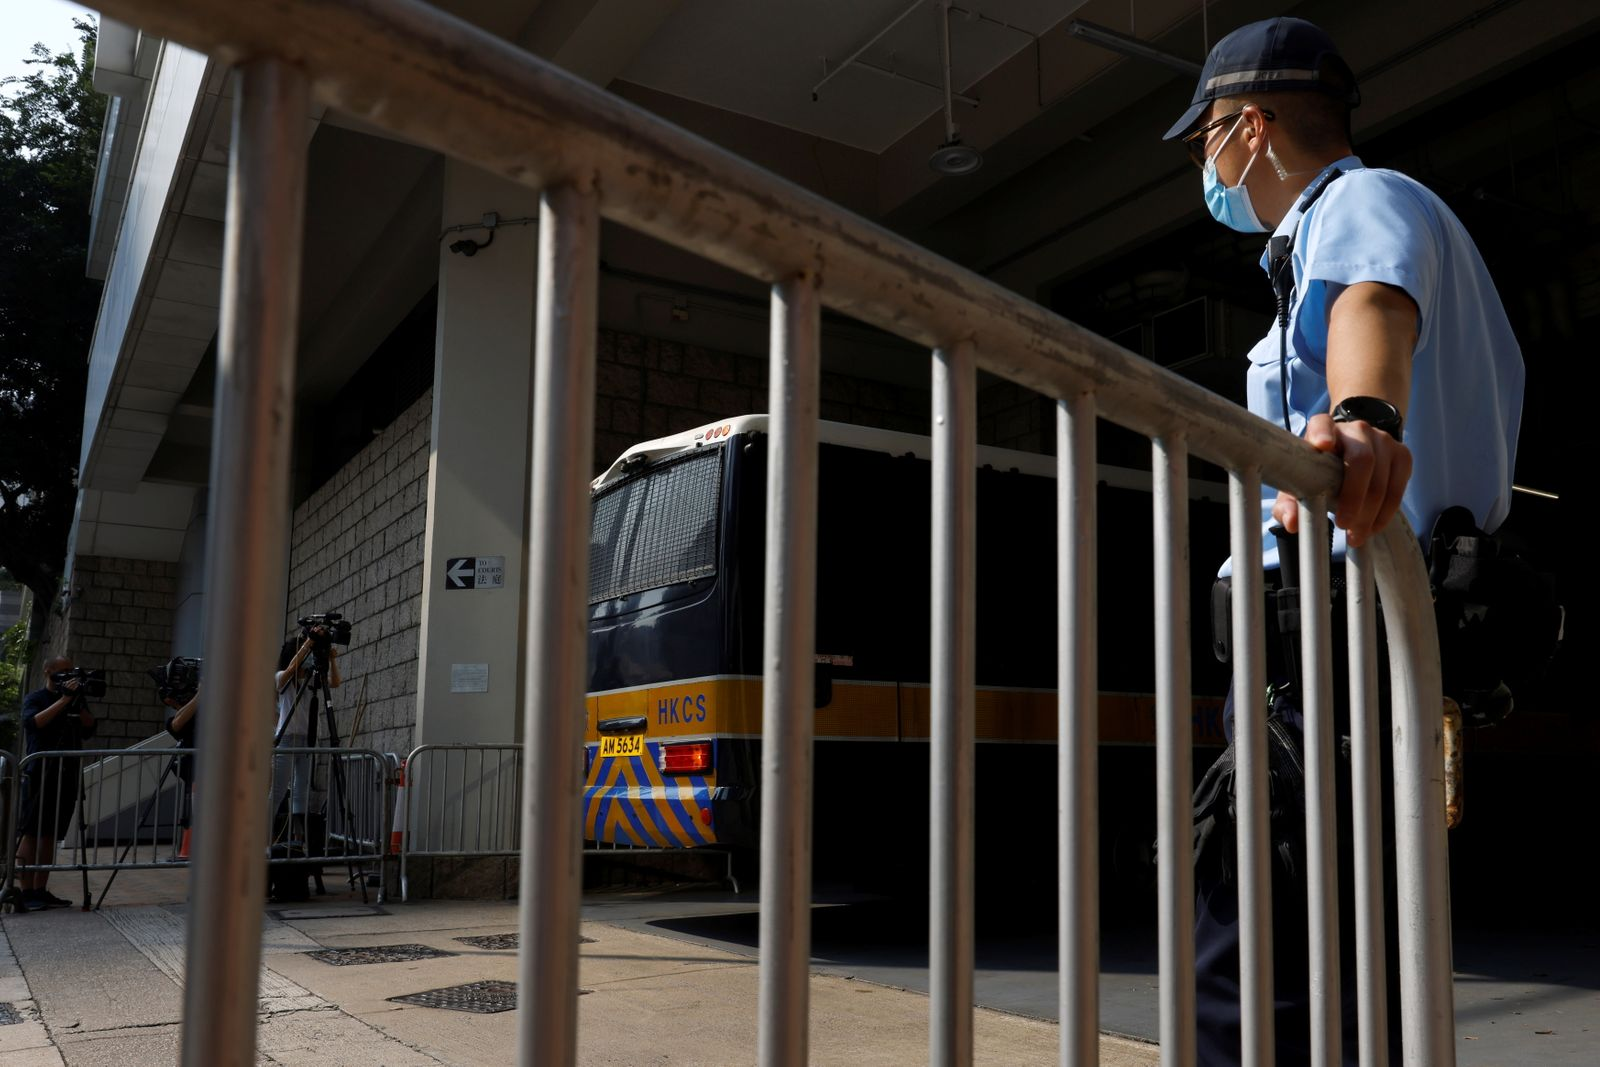 A prison van carrying Tong Ying-kit, the first person charged under the new national security law, arrives at High Court for a hearing, in Hong Kong